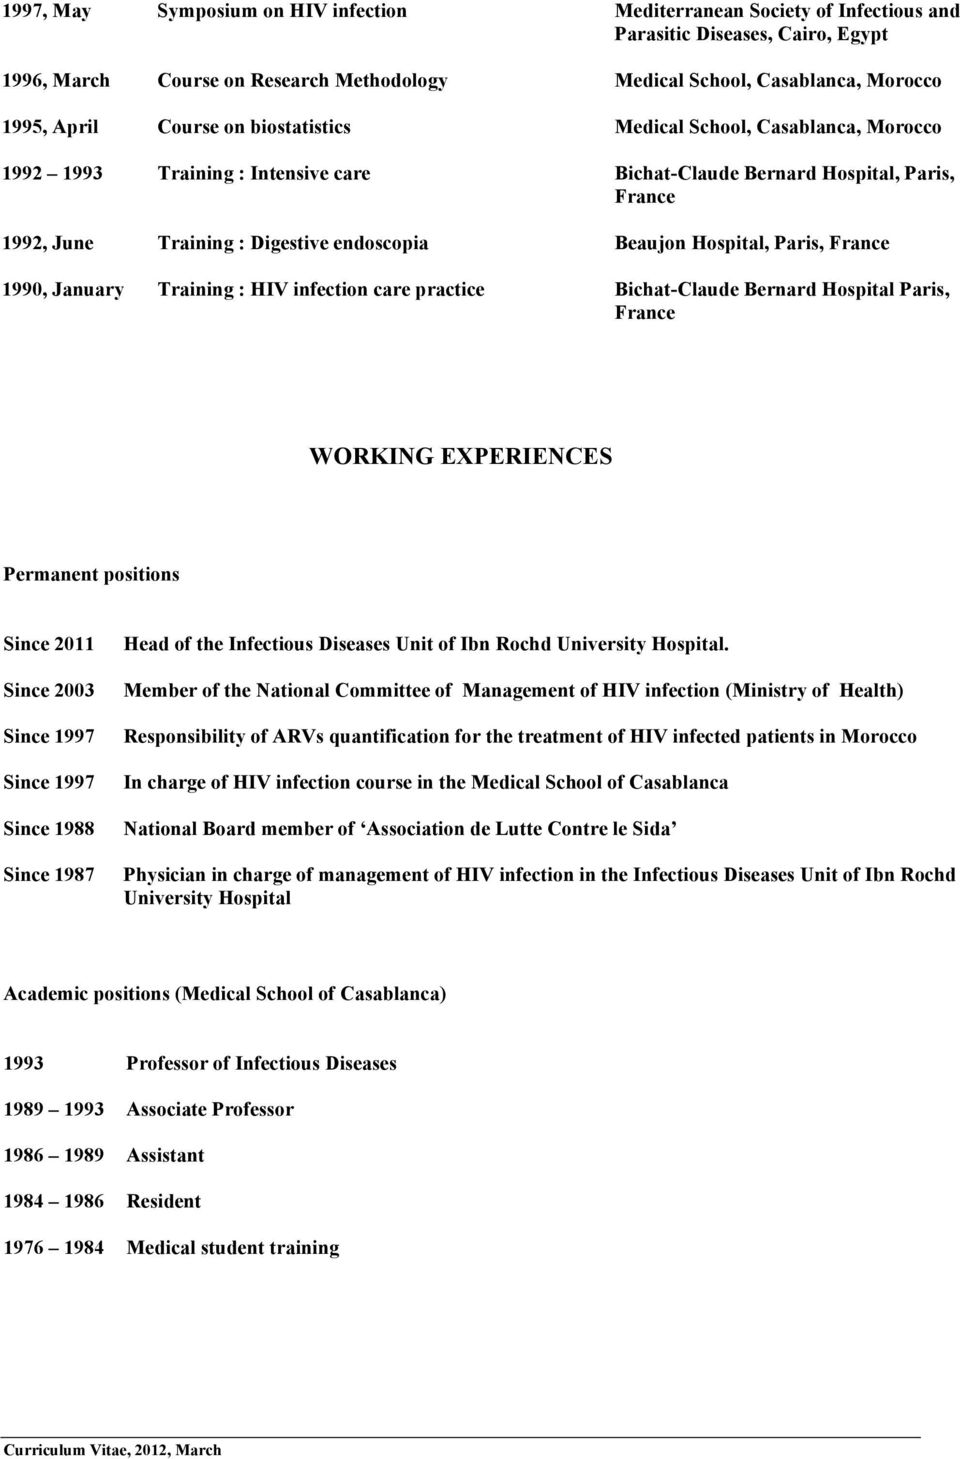 France 1990, January Training : HIV infection care practice Bichat-Claude Bernard Hospital Paris, France WORKING EXPERIENCES Permanent positions Since 2011 Since 2003 Since 1997 Since 1997 Since 1988